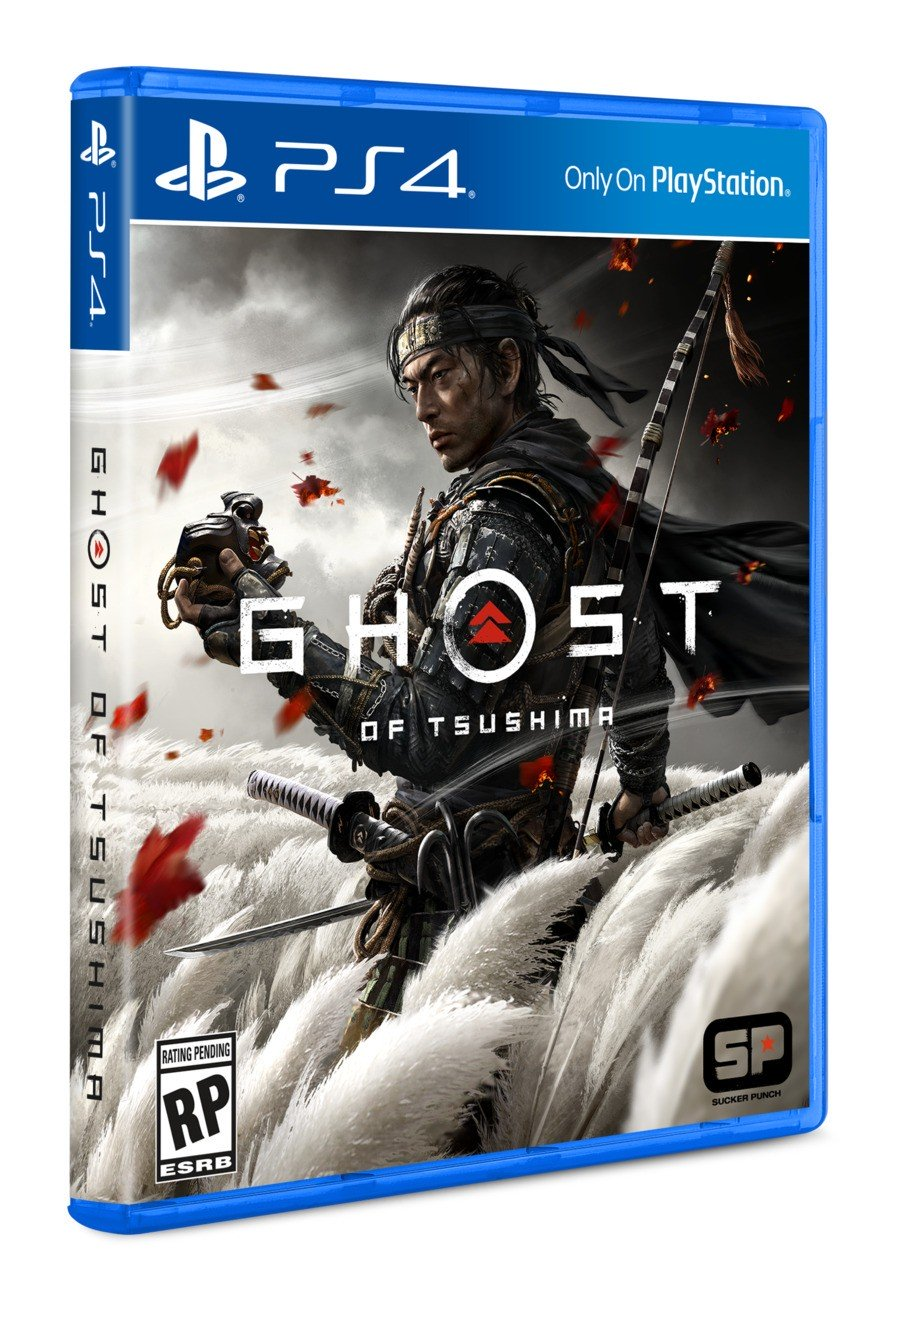 Ghost of Tsushima PS4 PlayStation 4 Box Art FAQ-Handbuch 2